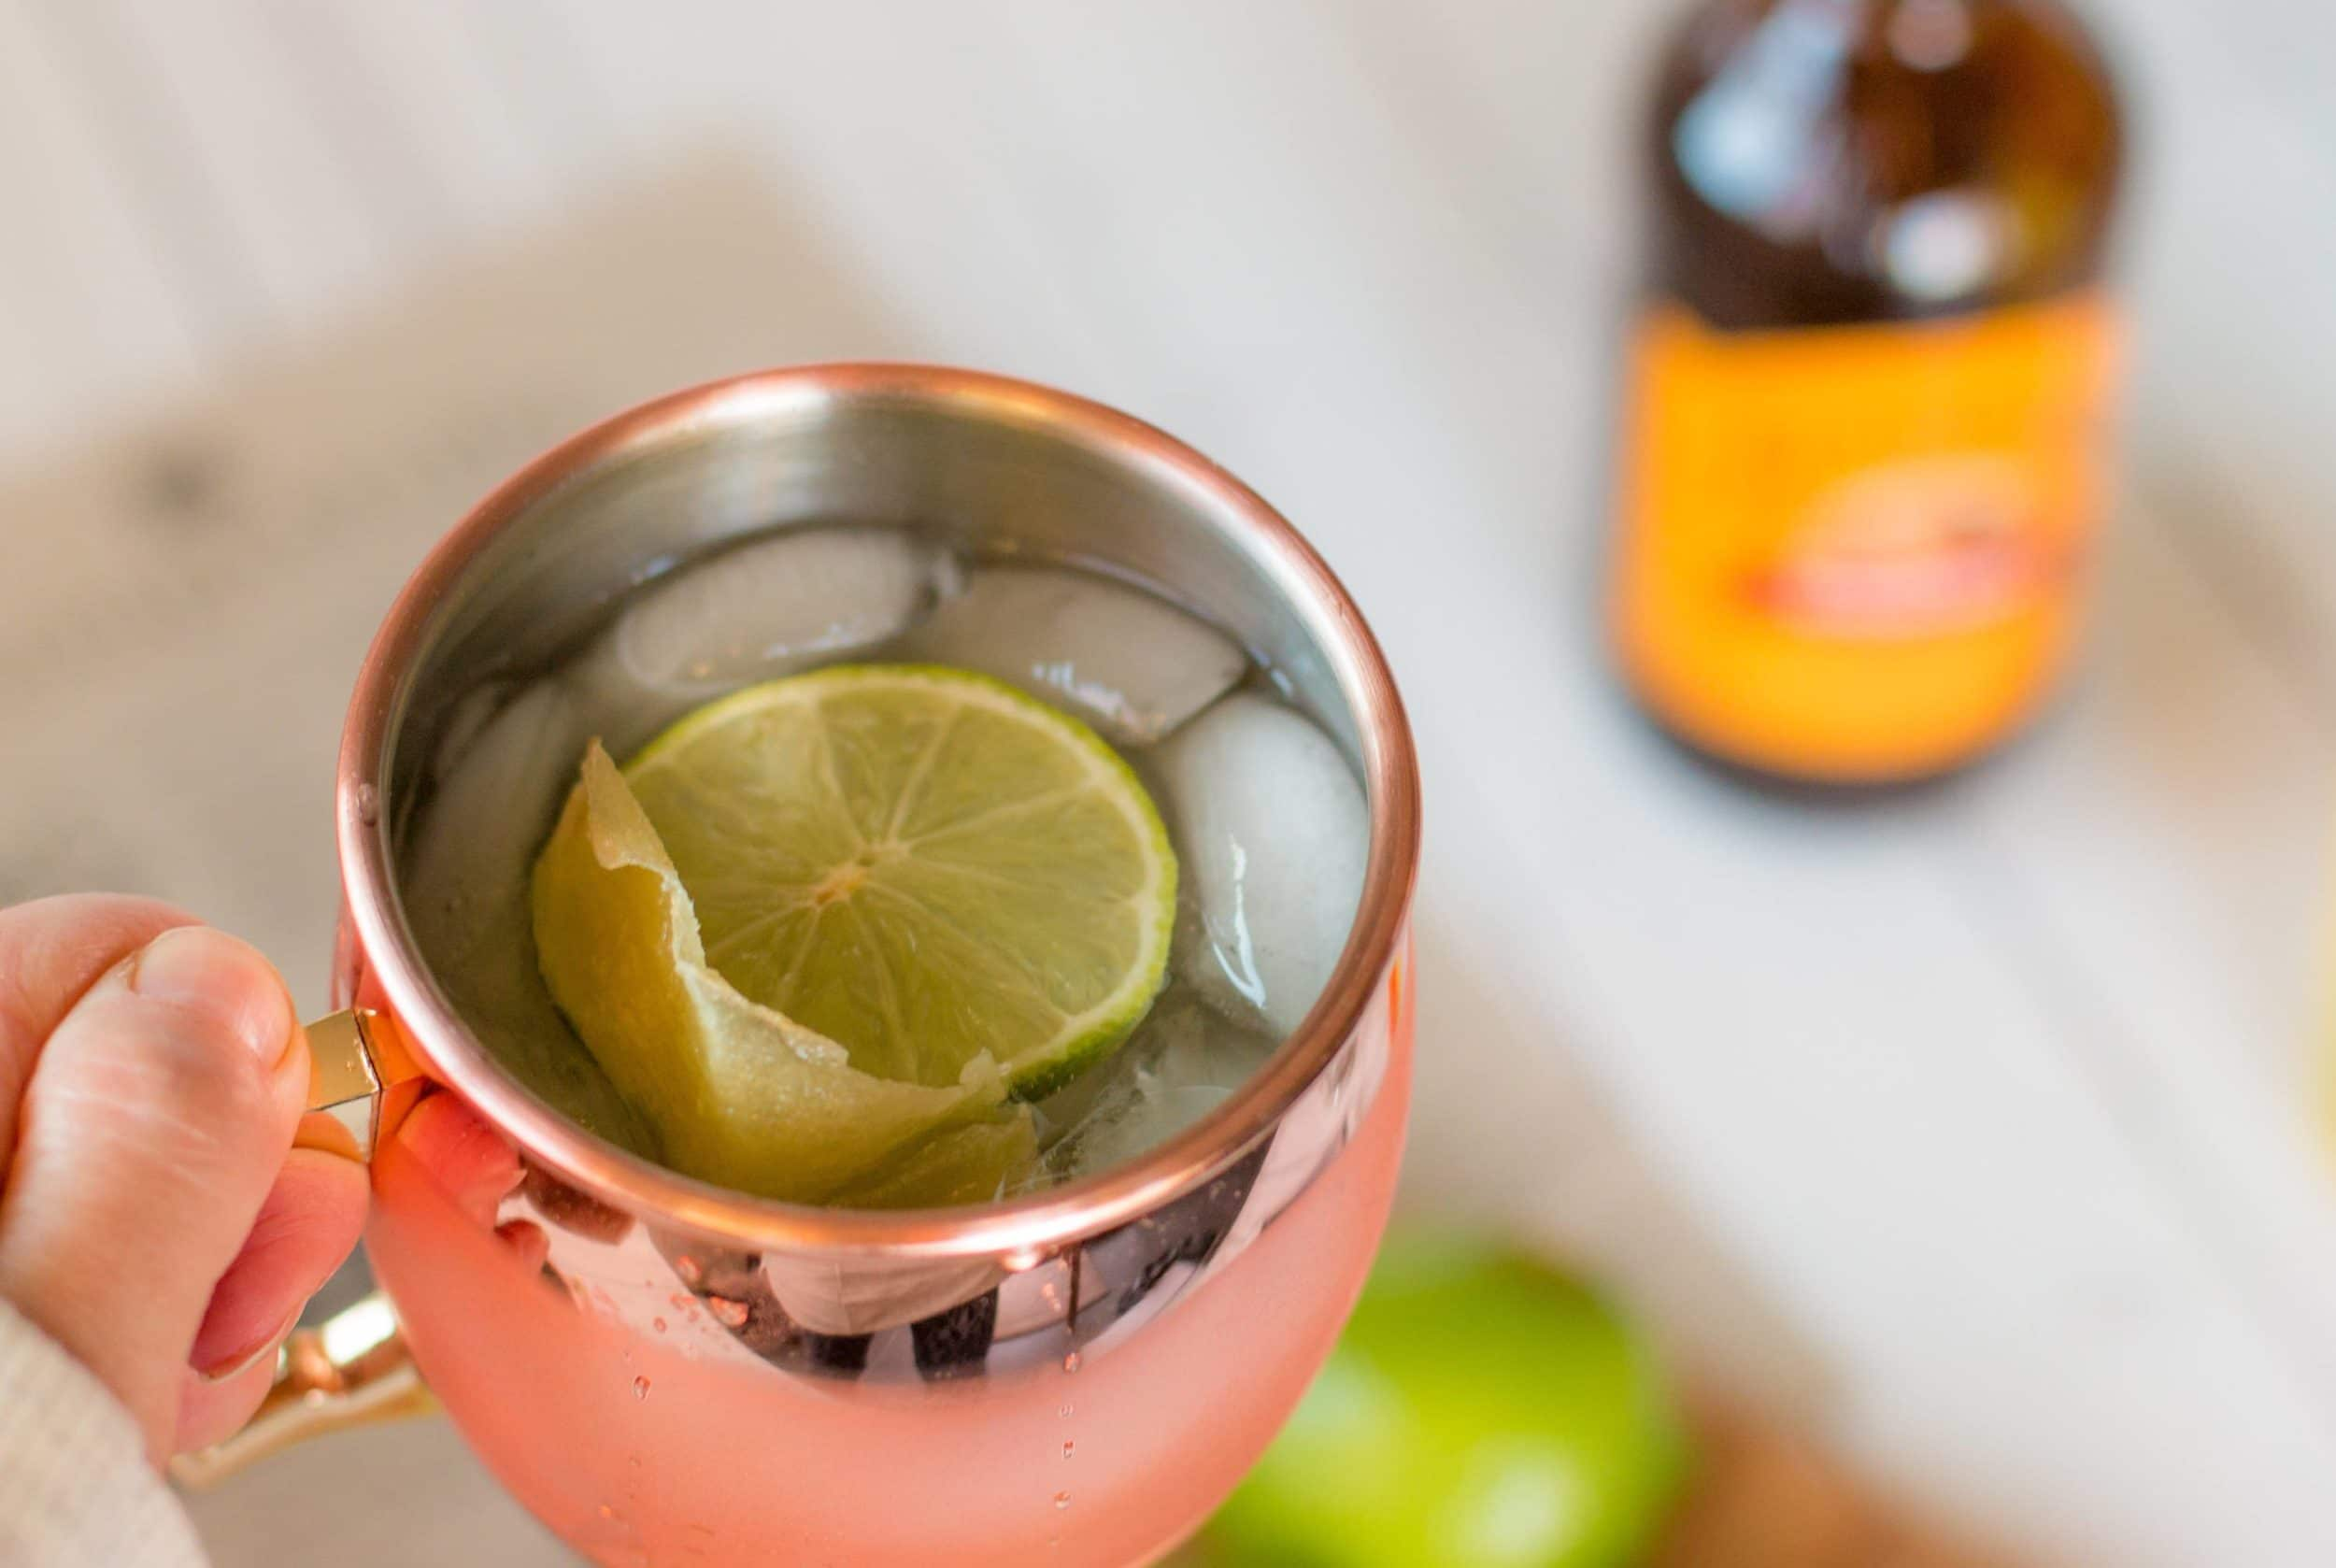 A Moscow mule made from a Thoughtfully gift box.